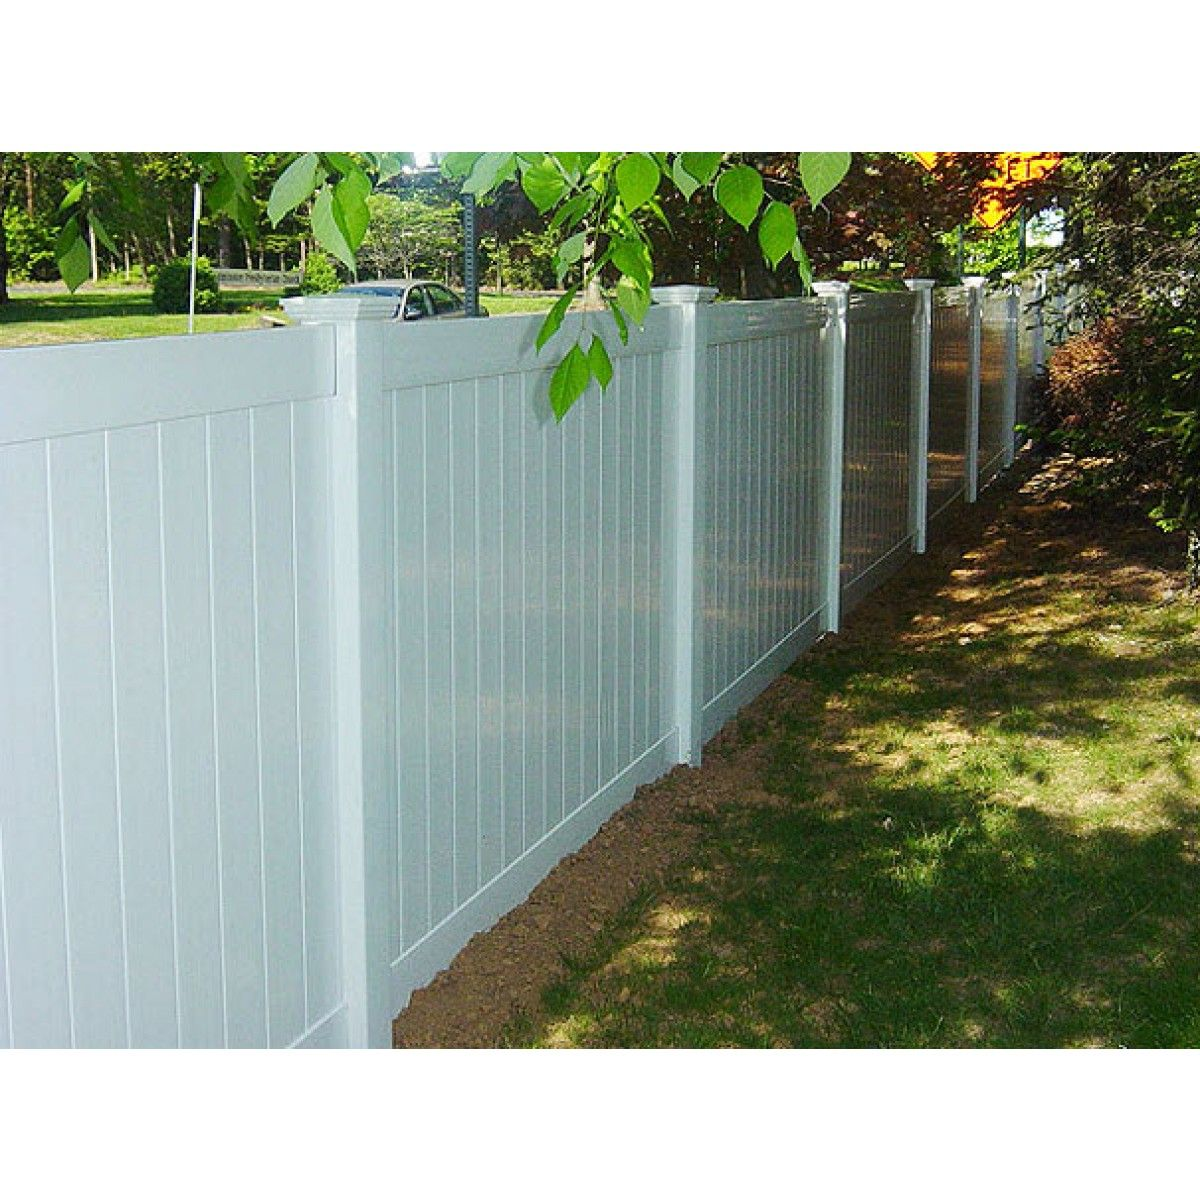 Solid Privacy Vinyl Fence Package 5 Panels 6' High